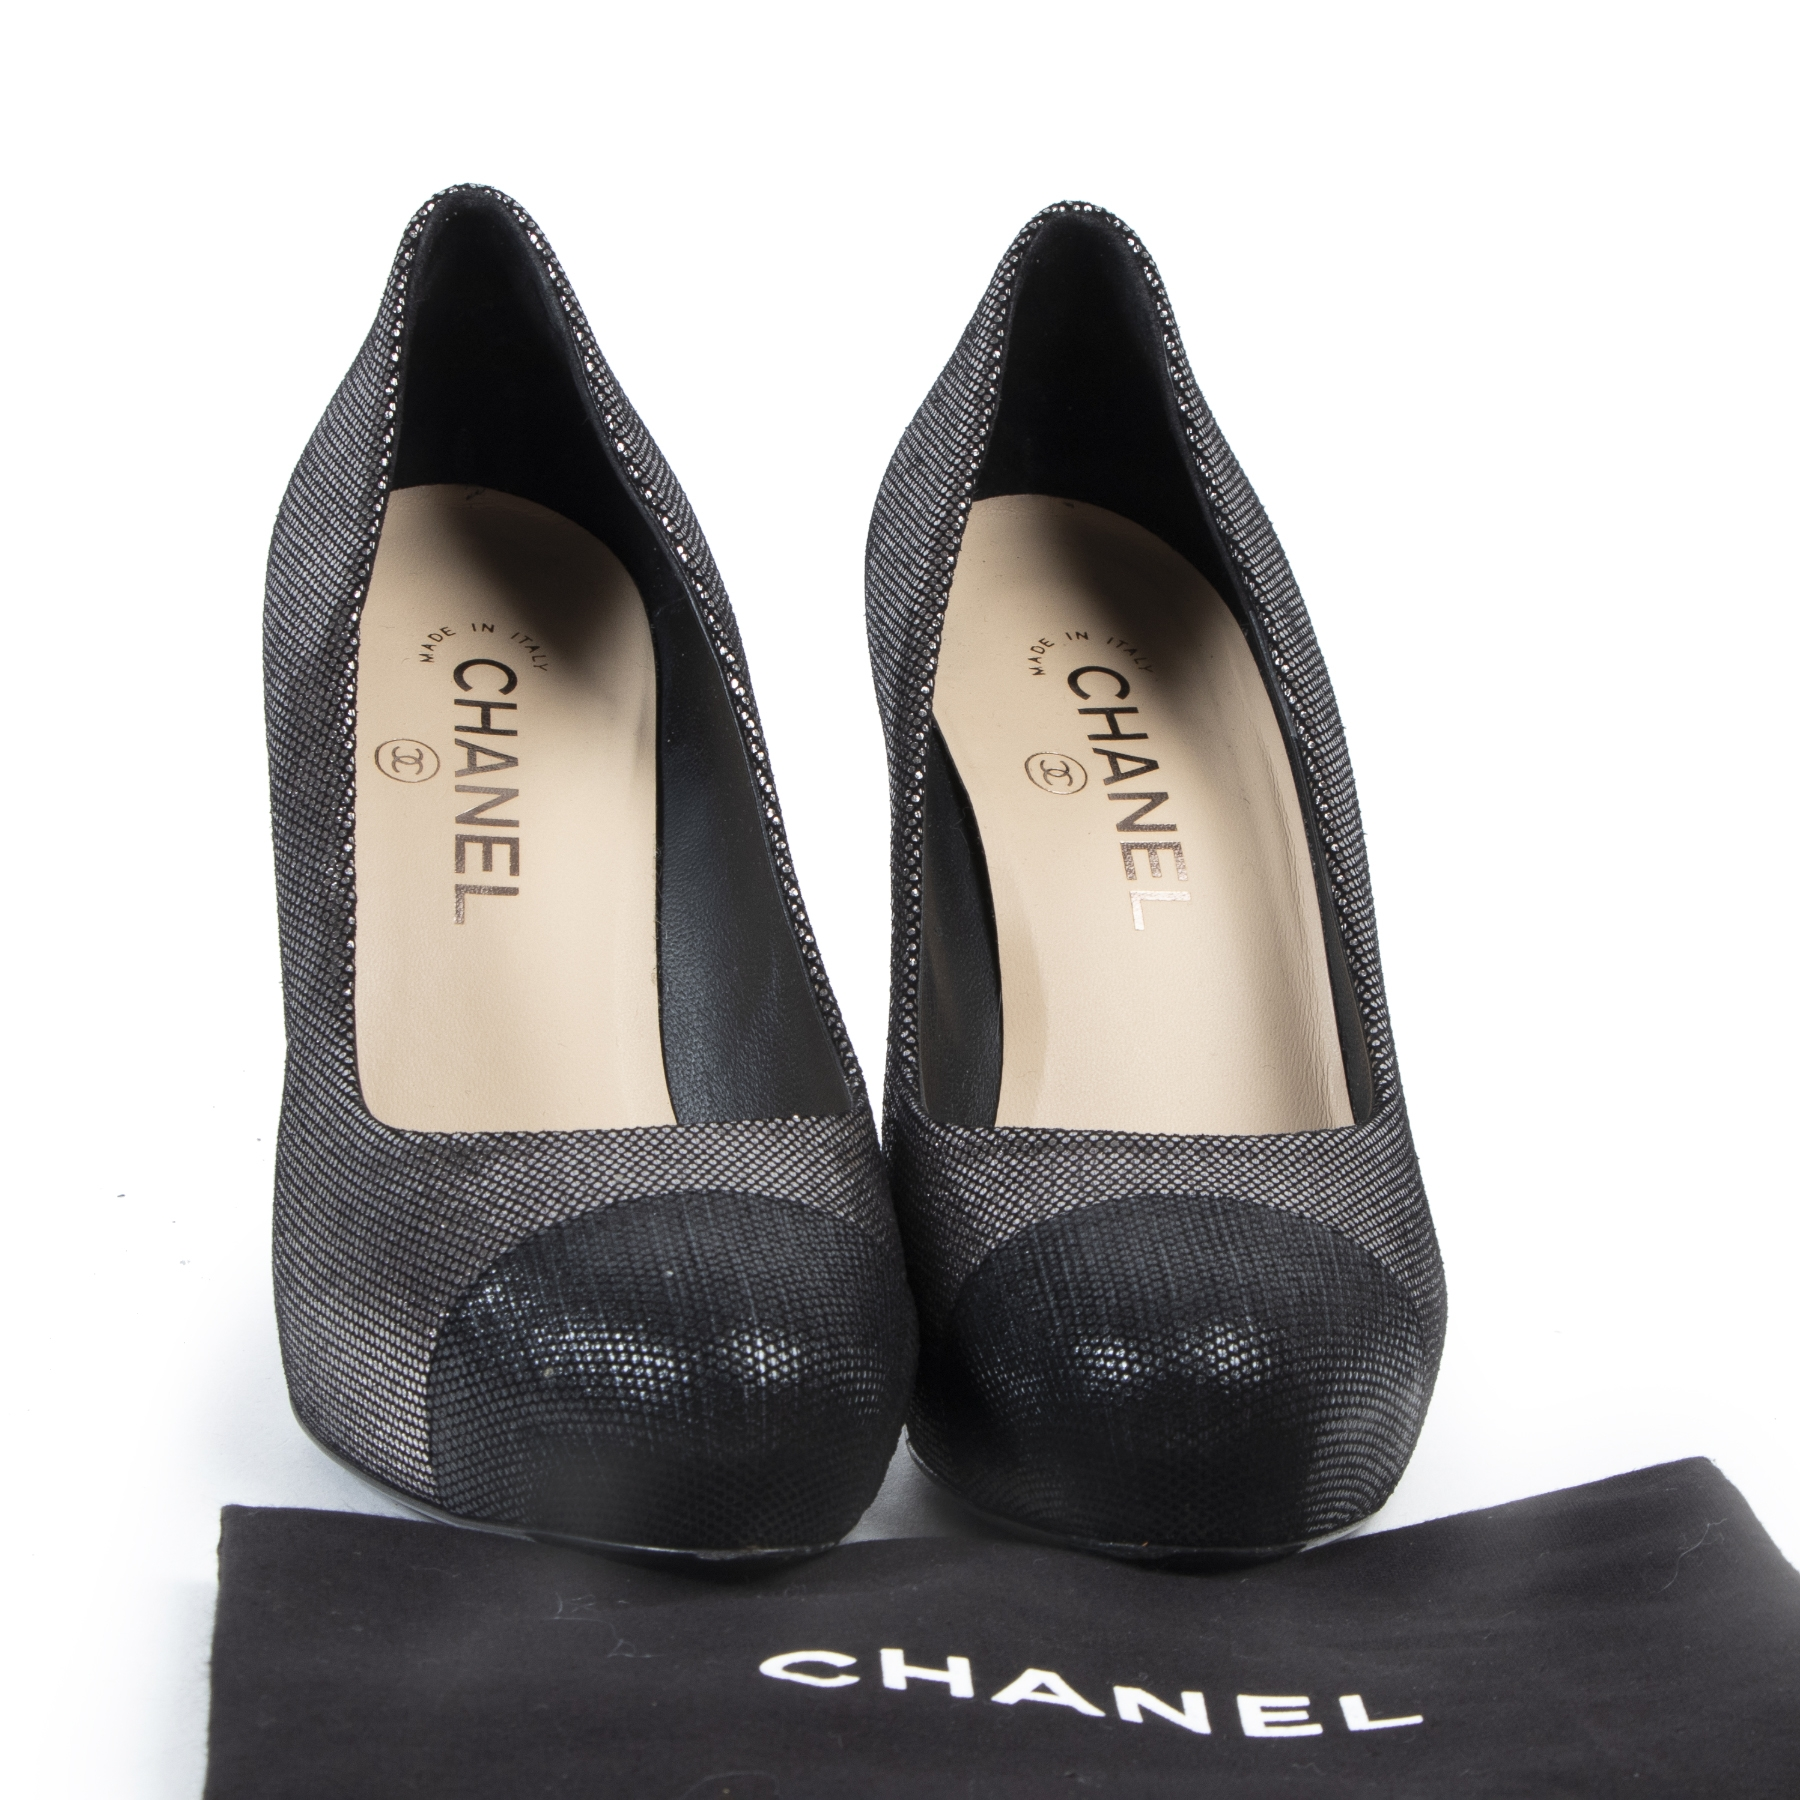 Authentic secondhand Chanel Metallic Black Caps CC Heels - Size 37,5 designer shoes fashion luxury vintage webshop safe secure online shopping